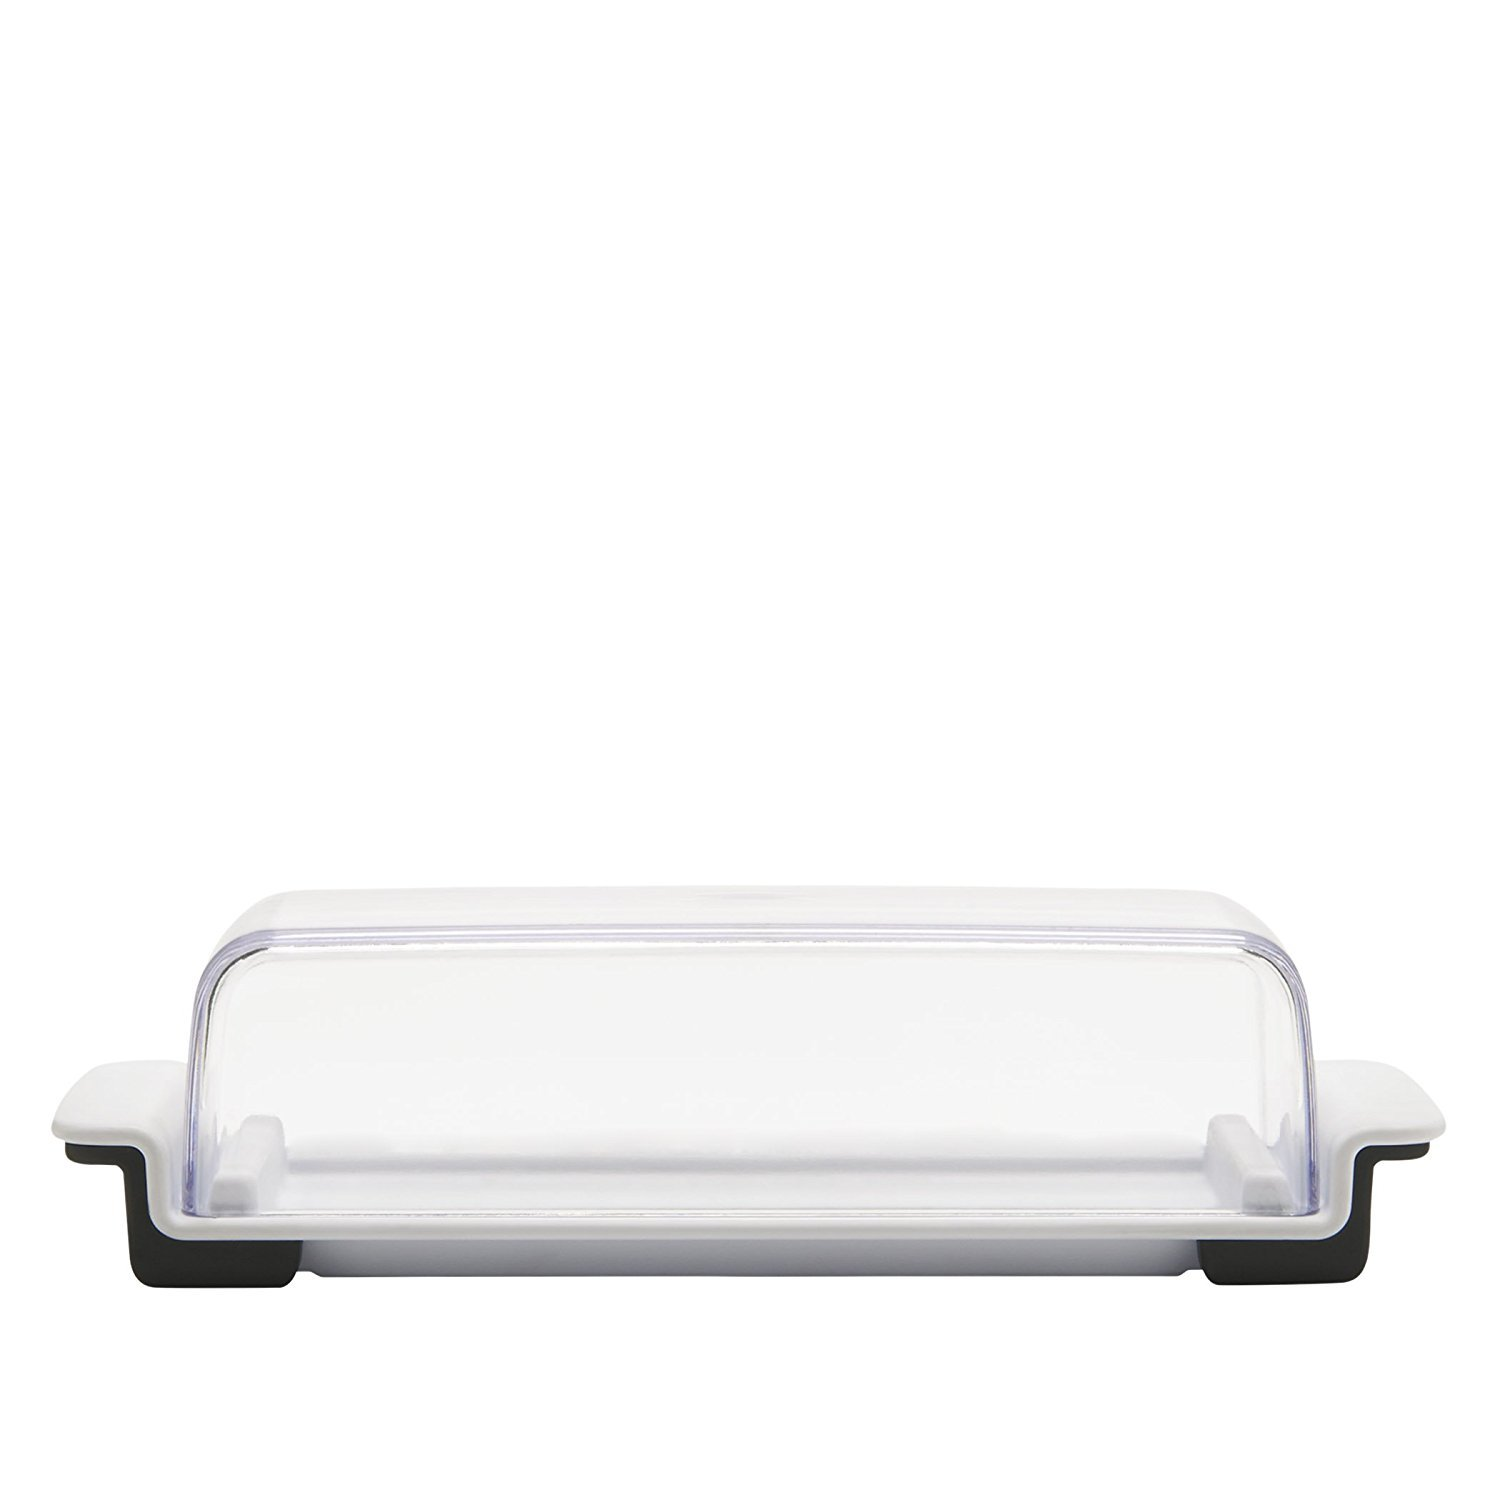 OXO Good Grips Sugar Dispenser and Butter Dish Bundle by OXO Good Grips (Image #2)